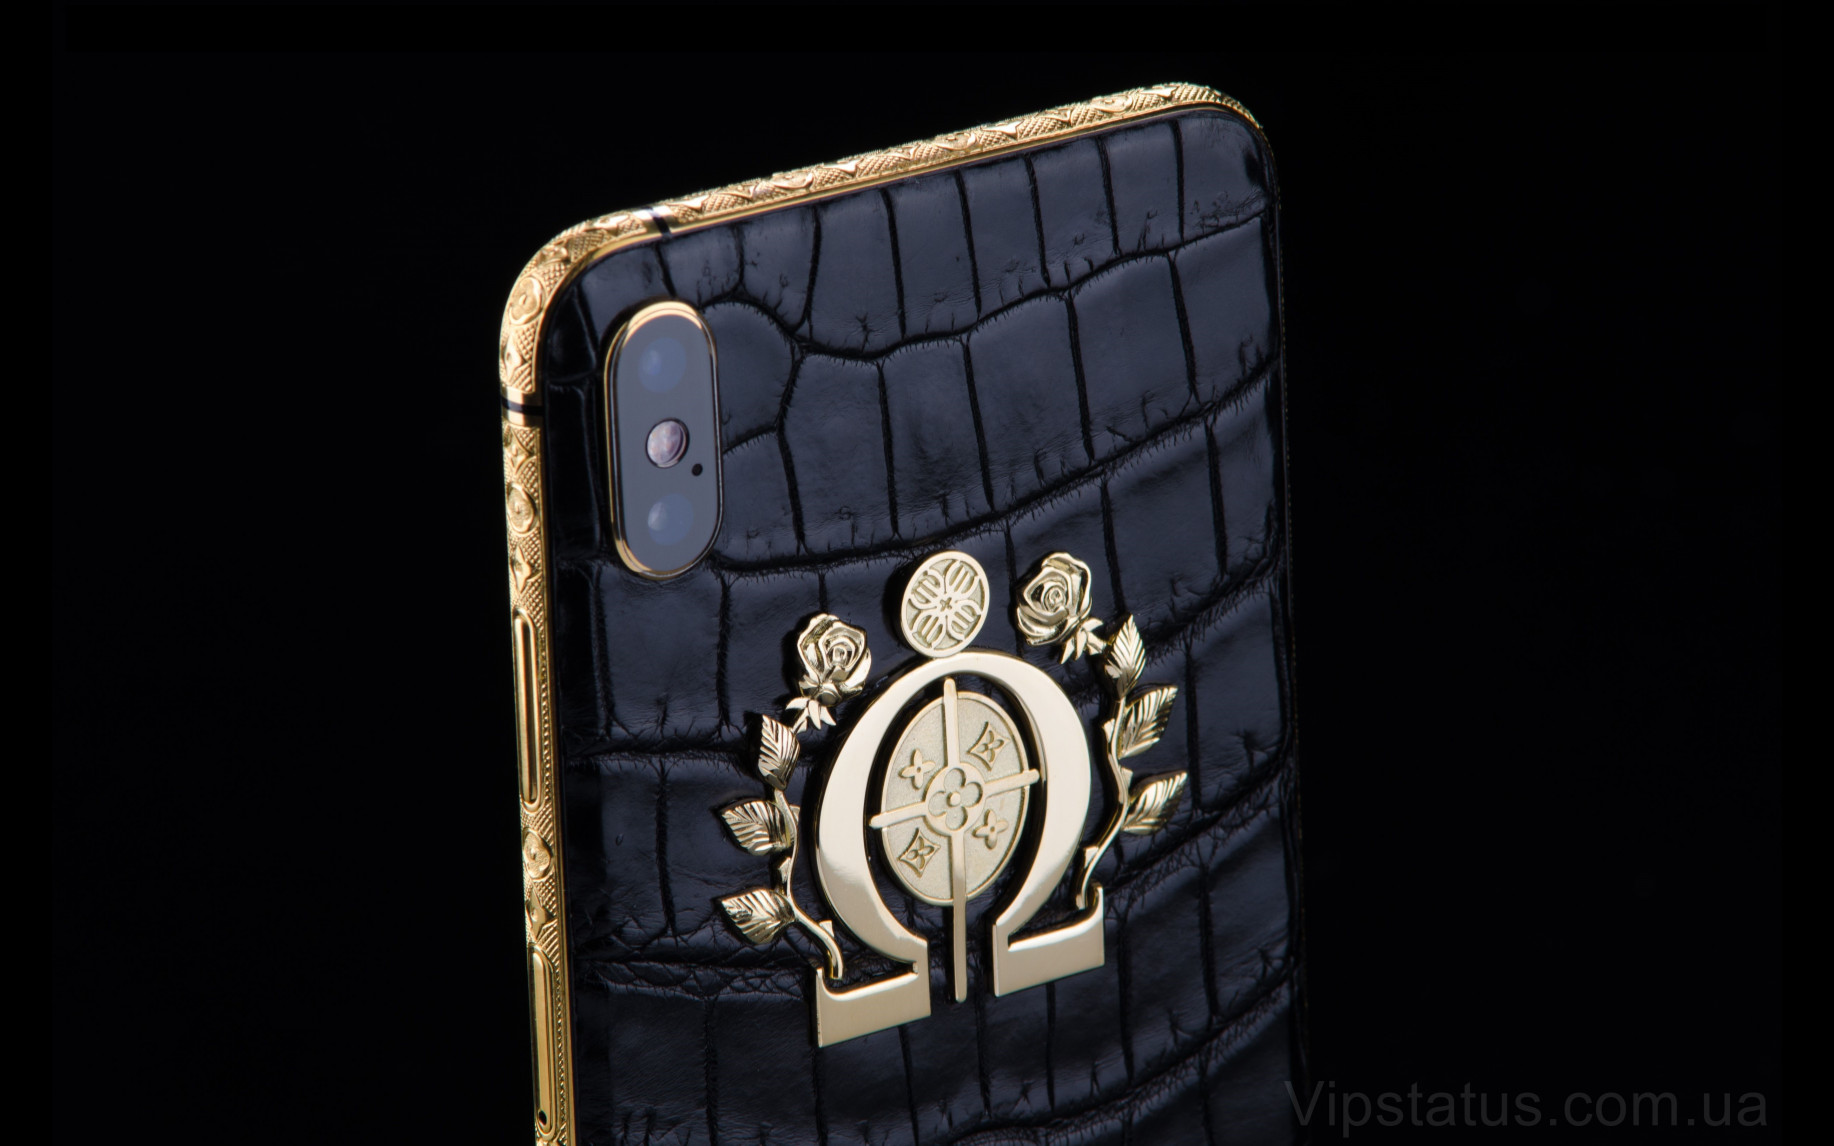 Elite Louis Vuitton IPHONE 11 PRO 512 GB Louis Vuitton IPHONE 11 PRO 512 GB image 1